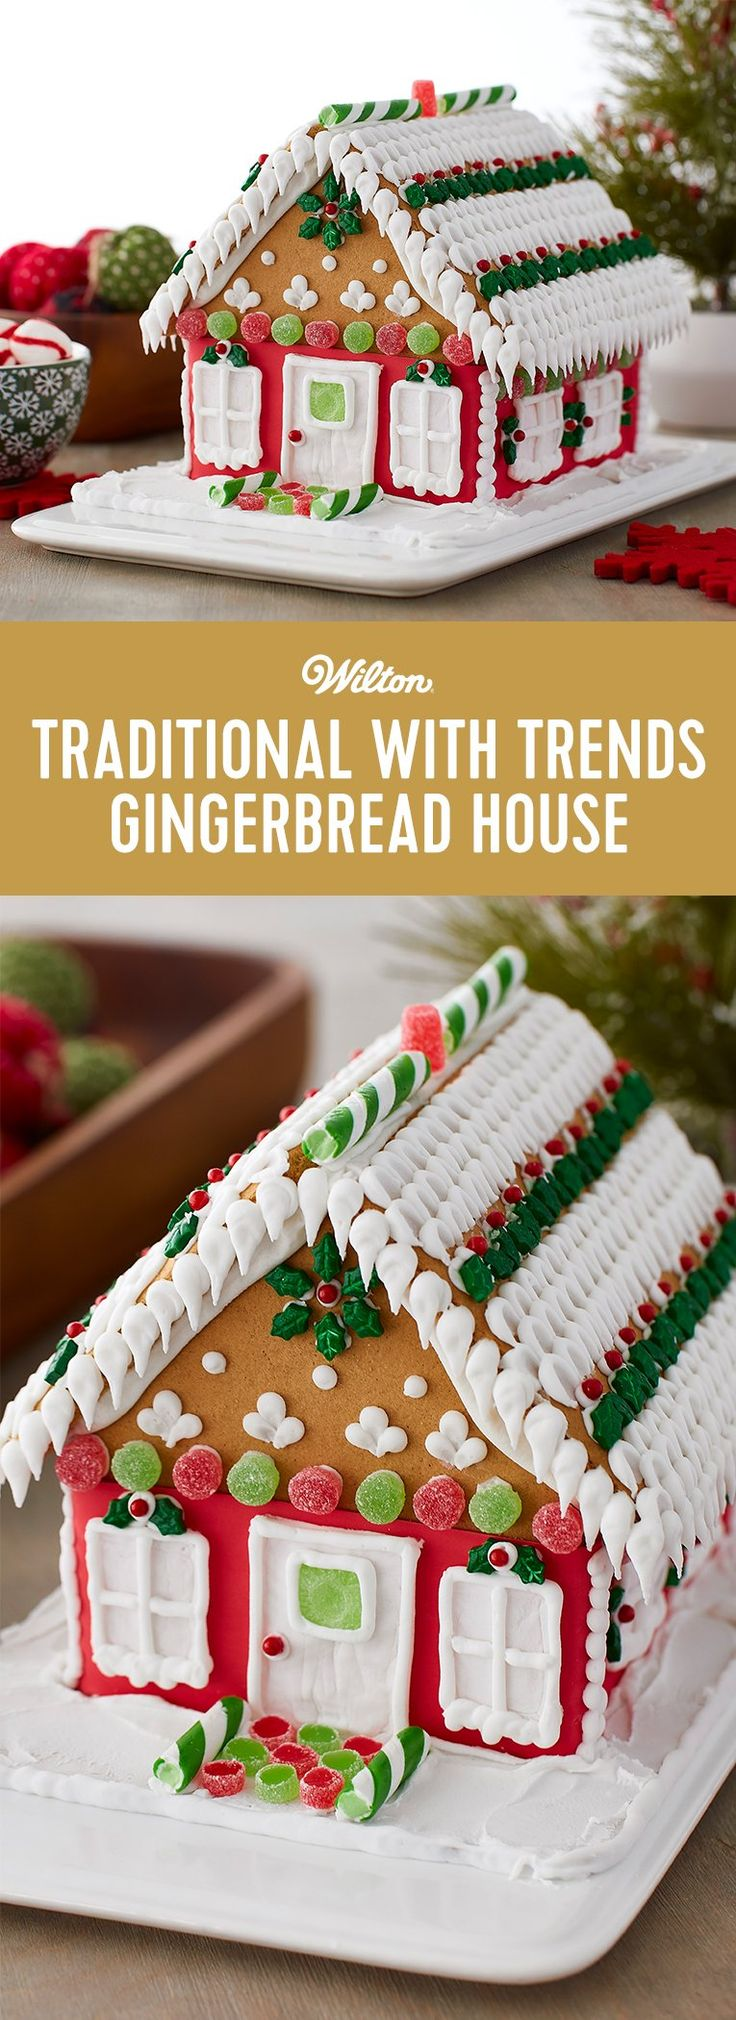 Traditional with Trends Gingerbread House - This gingerbread house kit may be traditional in architecture, but the icing techniques and colorful candy decorating adds trendy style and excitement to the designs. Decorate this house with the kids for a fun Christmas project, and to display on your holiday table. #gingerbread #gingerbreadhouse #christmas #wiltoncakes